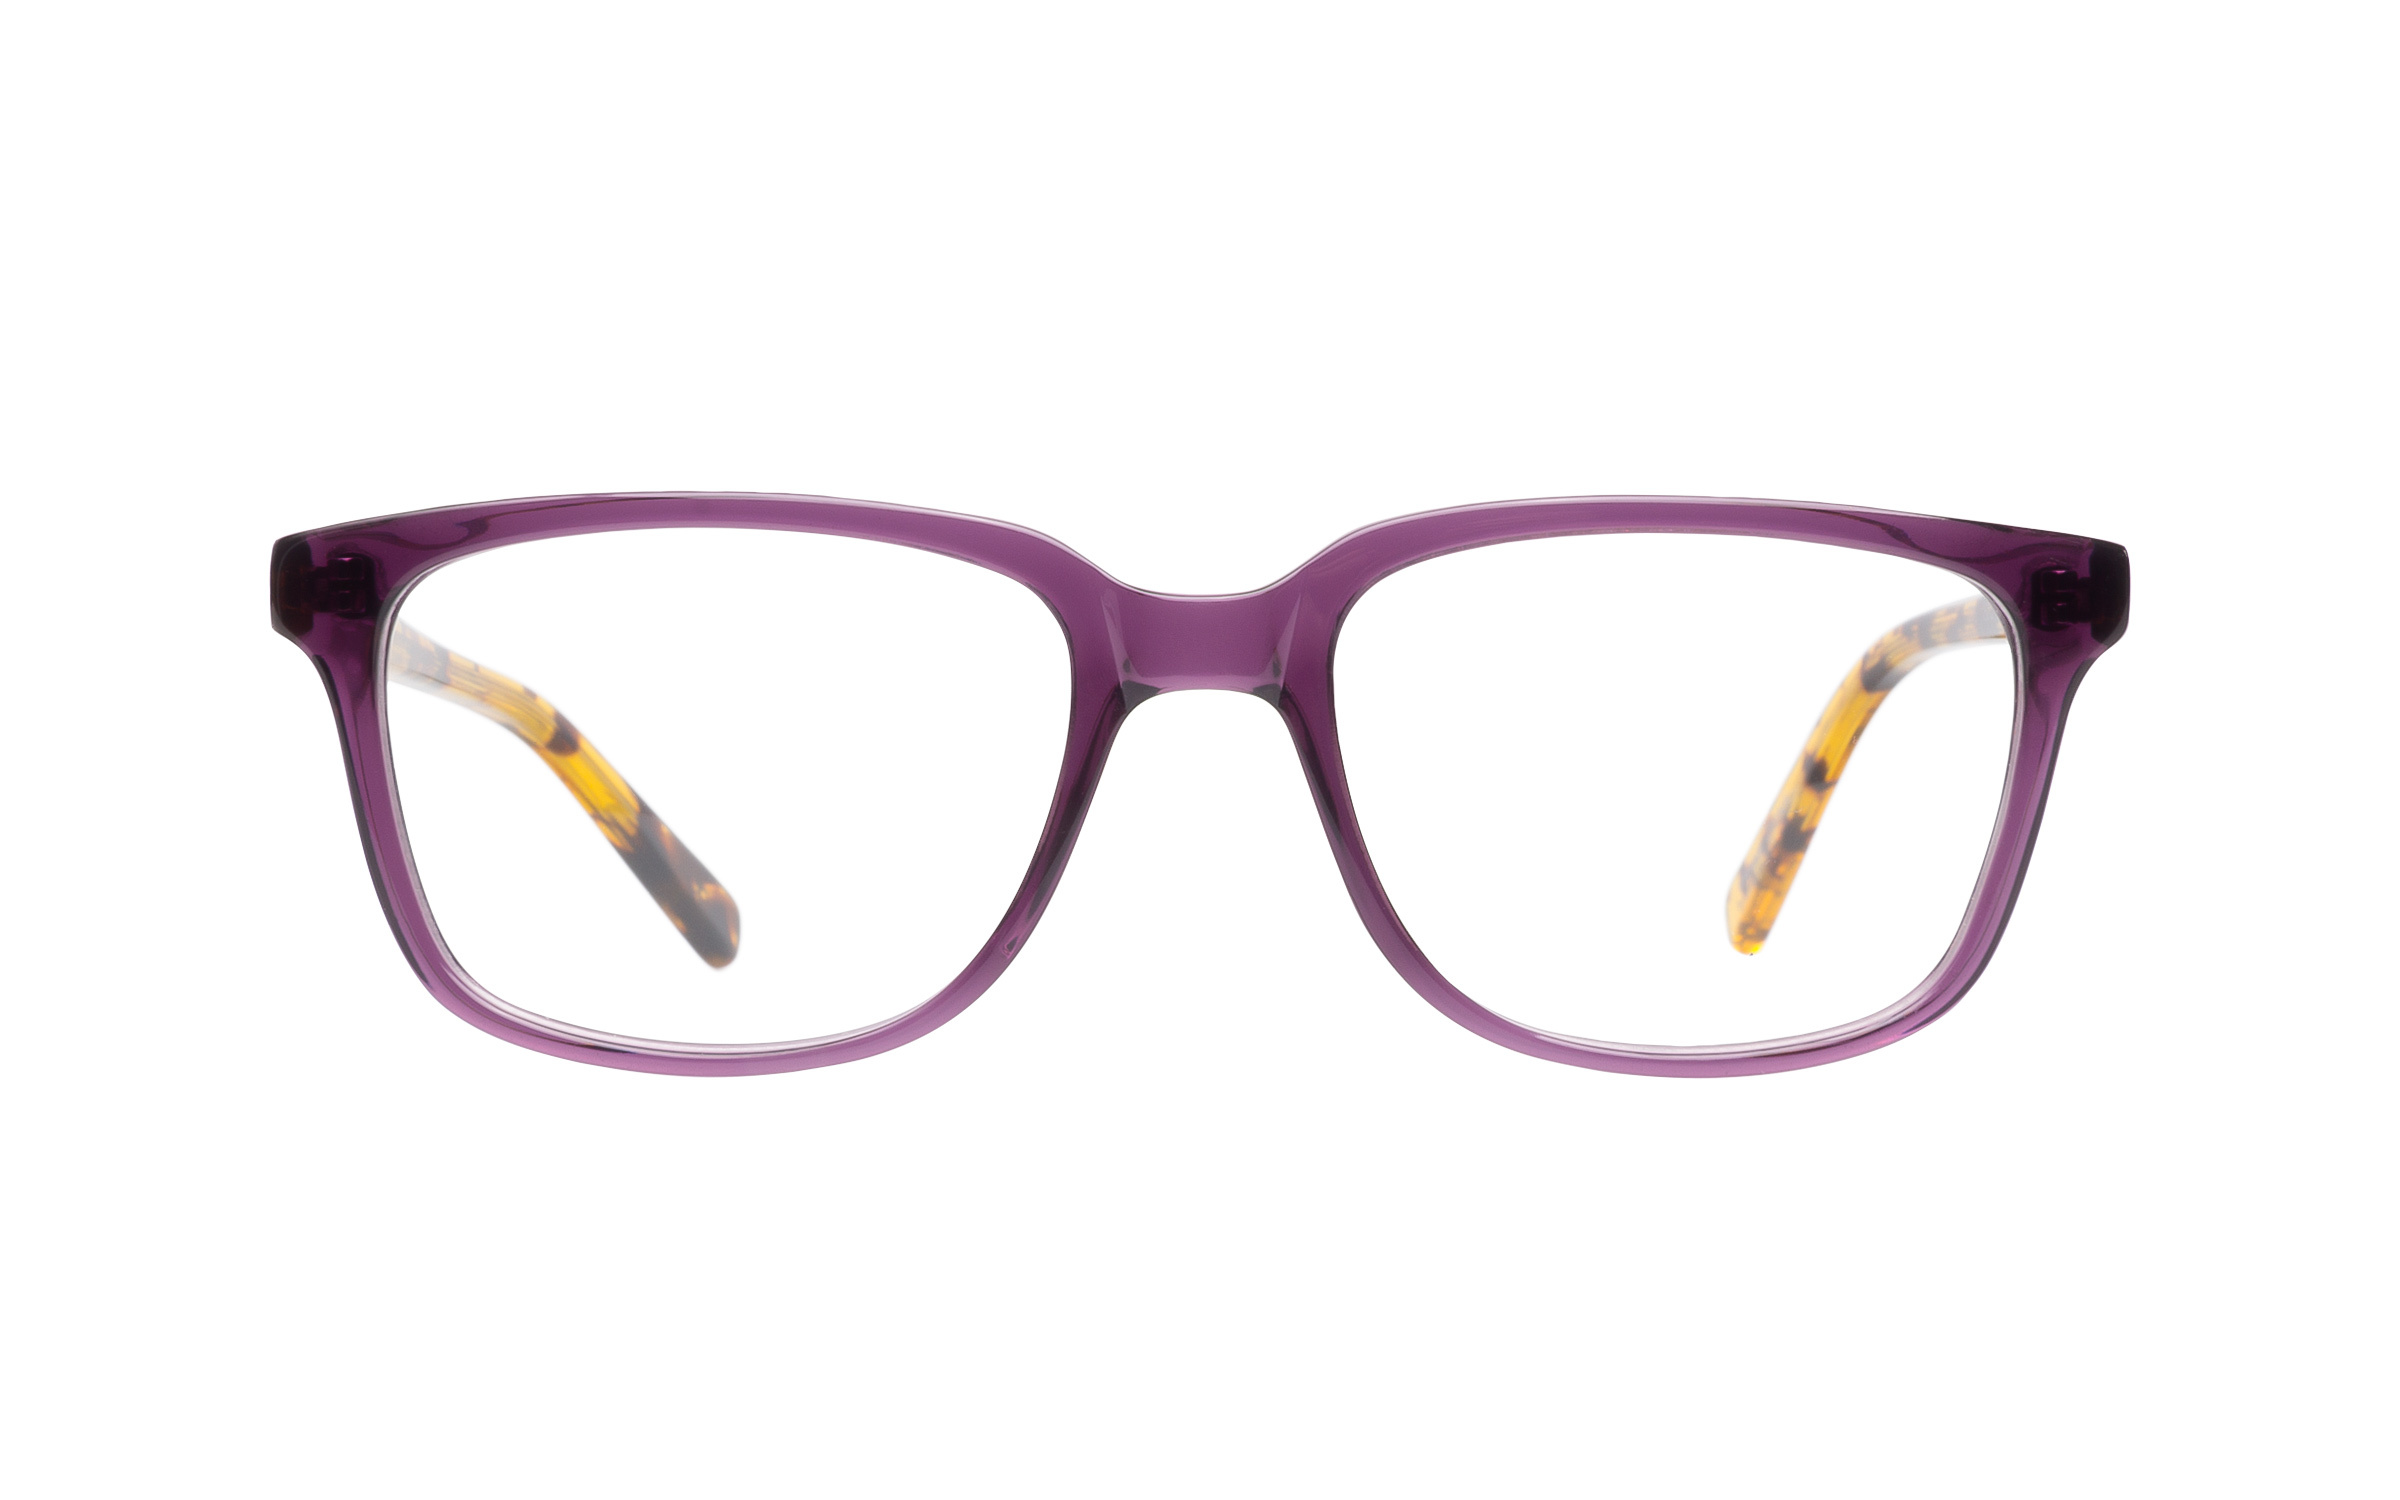 Womens_Square_Glasses_Purple_7_for_All_Mankind_Online_Coastal